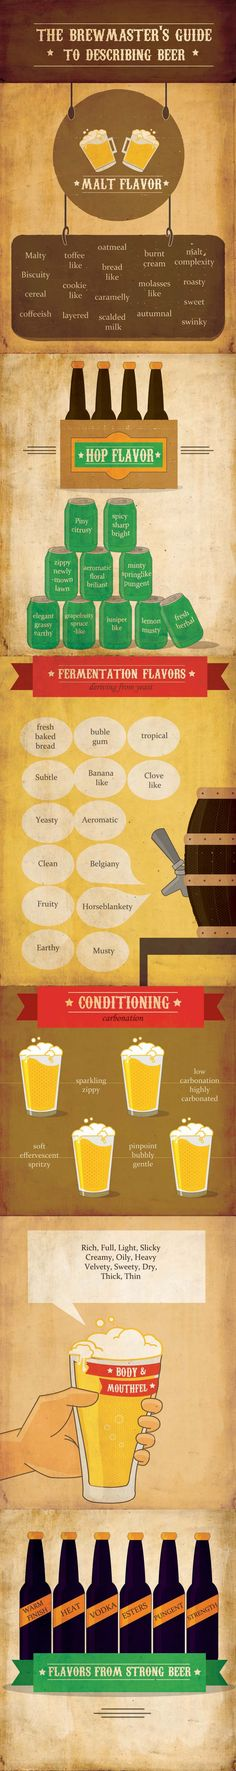 #Infographic - How to Describe #Beer Like a #Pro - http://www.finedininglovers.com/blog/food-drinks/describe-beer-like-a-pro/